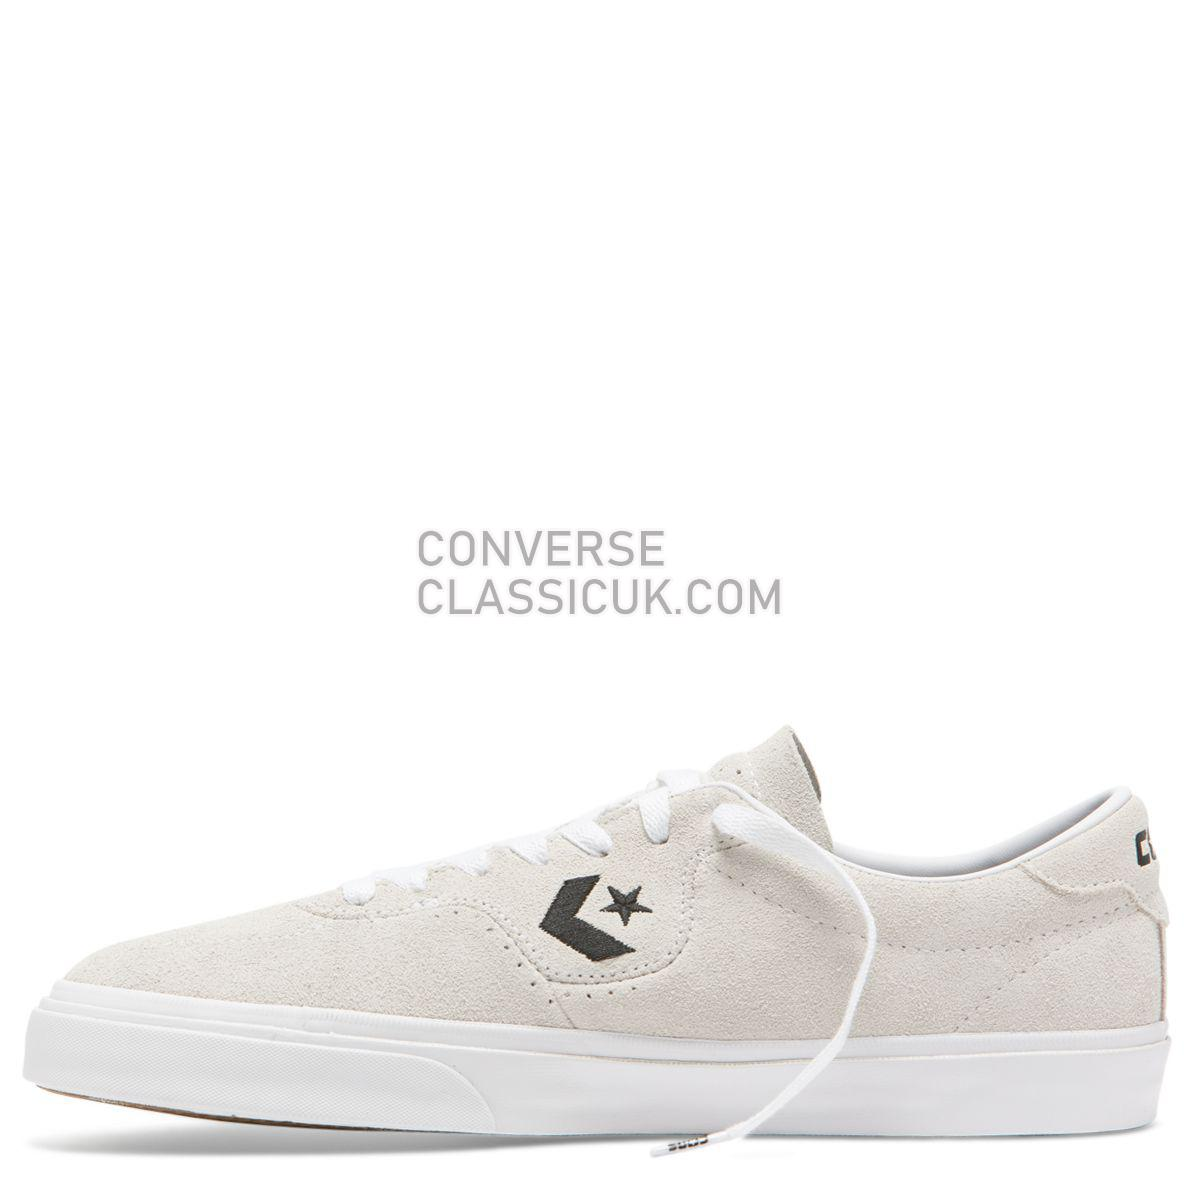 Converse CONS Louie Lopez Pro Low Top White Mens 163262 White/White/Black Shoes